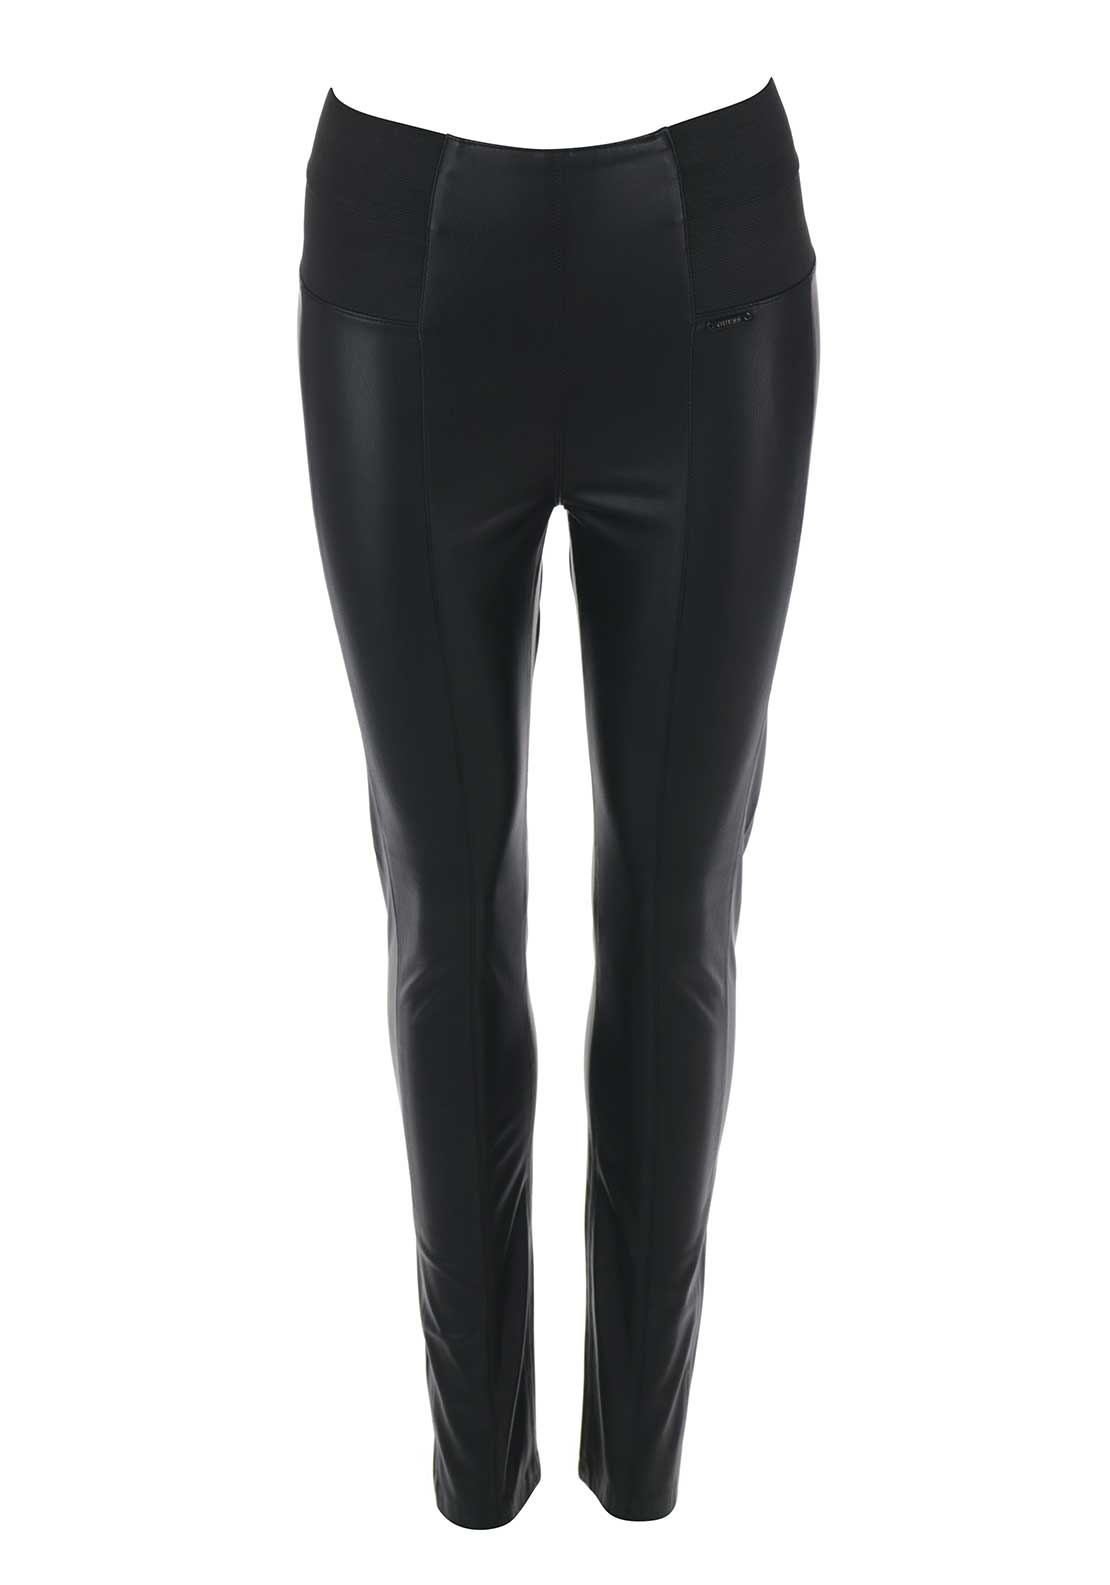 Guess Womens Suzanne Leggings, Black